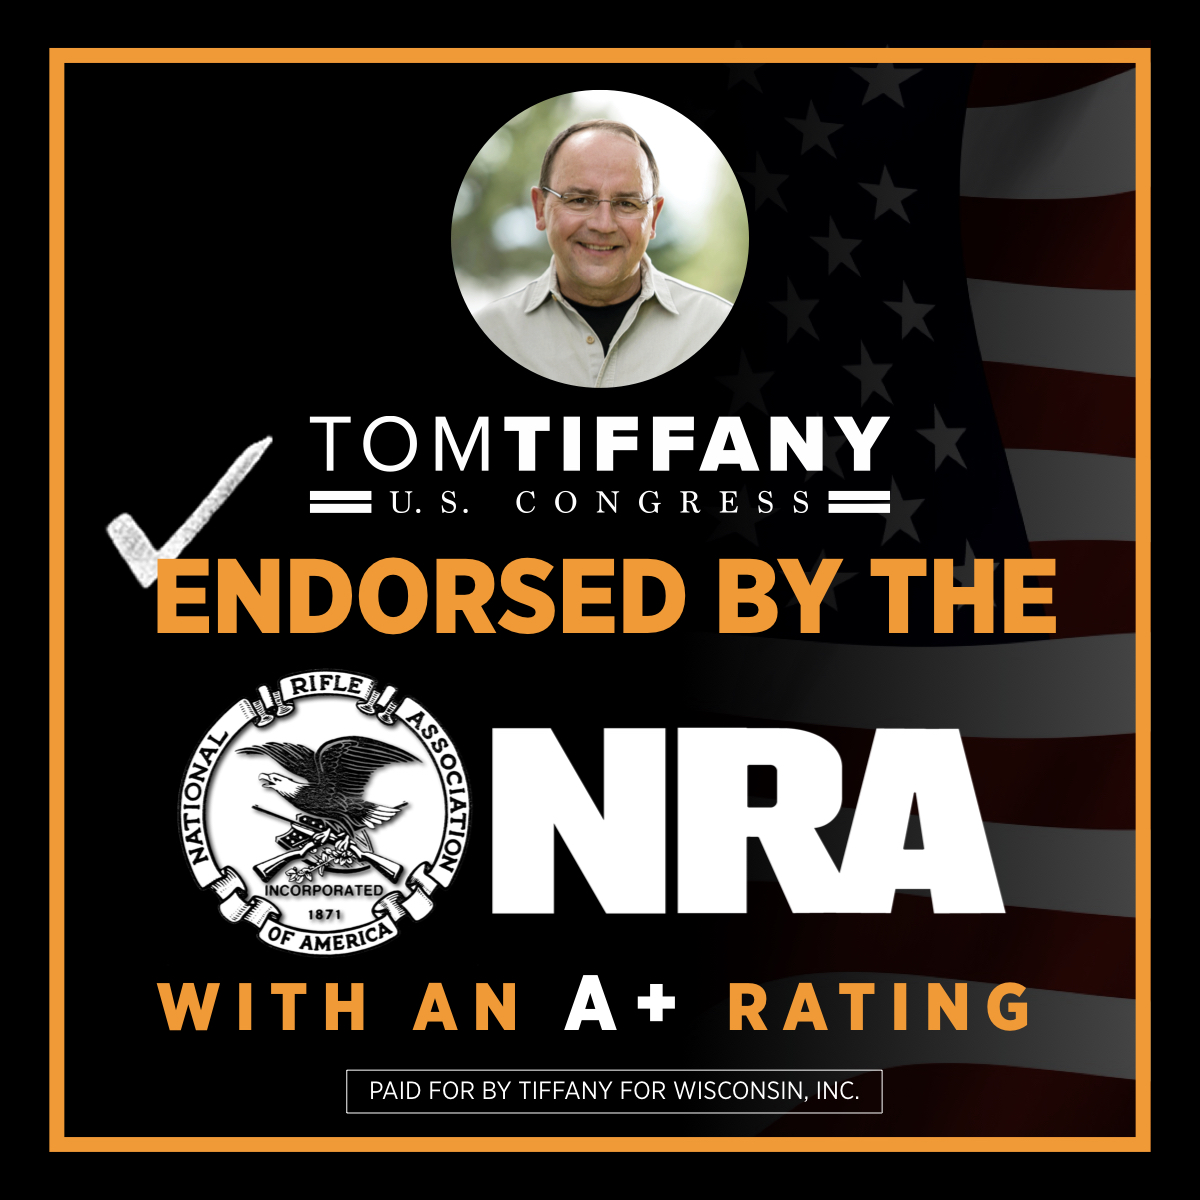 As an @NRA lifetime member with an A+ rating, I'm proud to be the ONLY candidate in this race endorsed by the National Rifle Association.   You can count on me to work with @realDonaldTrump to protect the 2nd Amendment.   #2A #WI07 #MAGA #KAG @NRAPVF